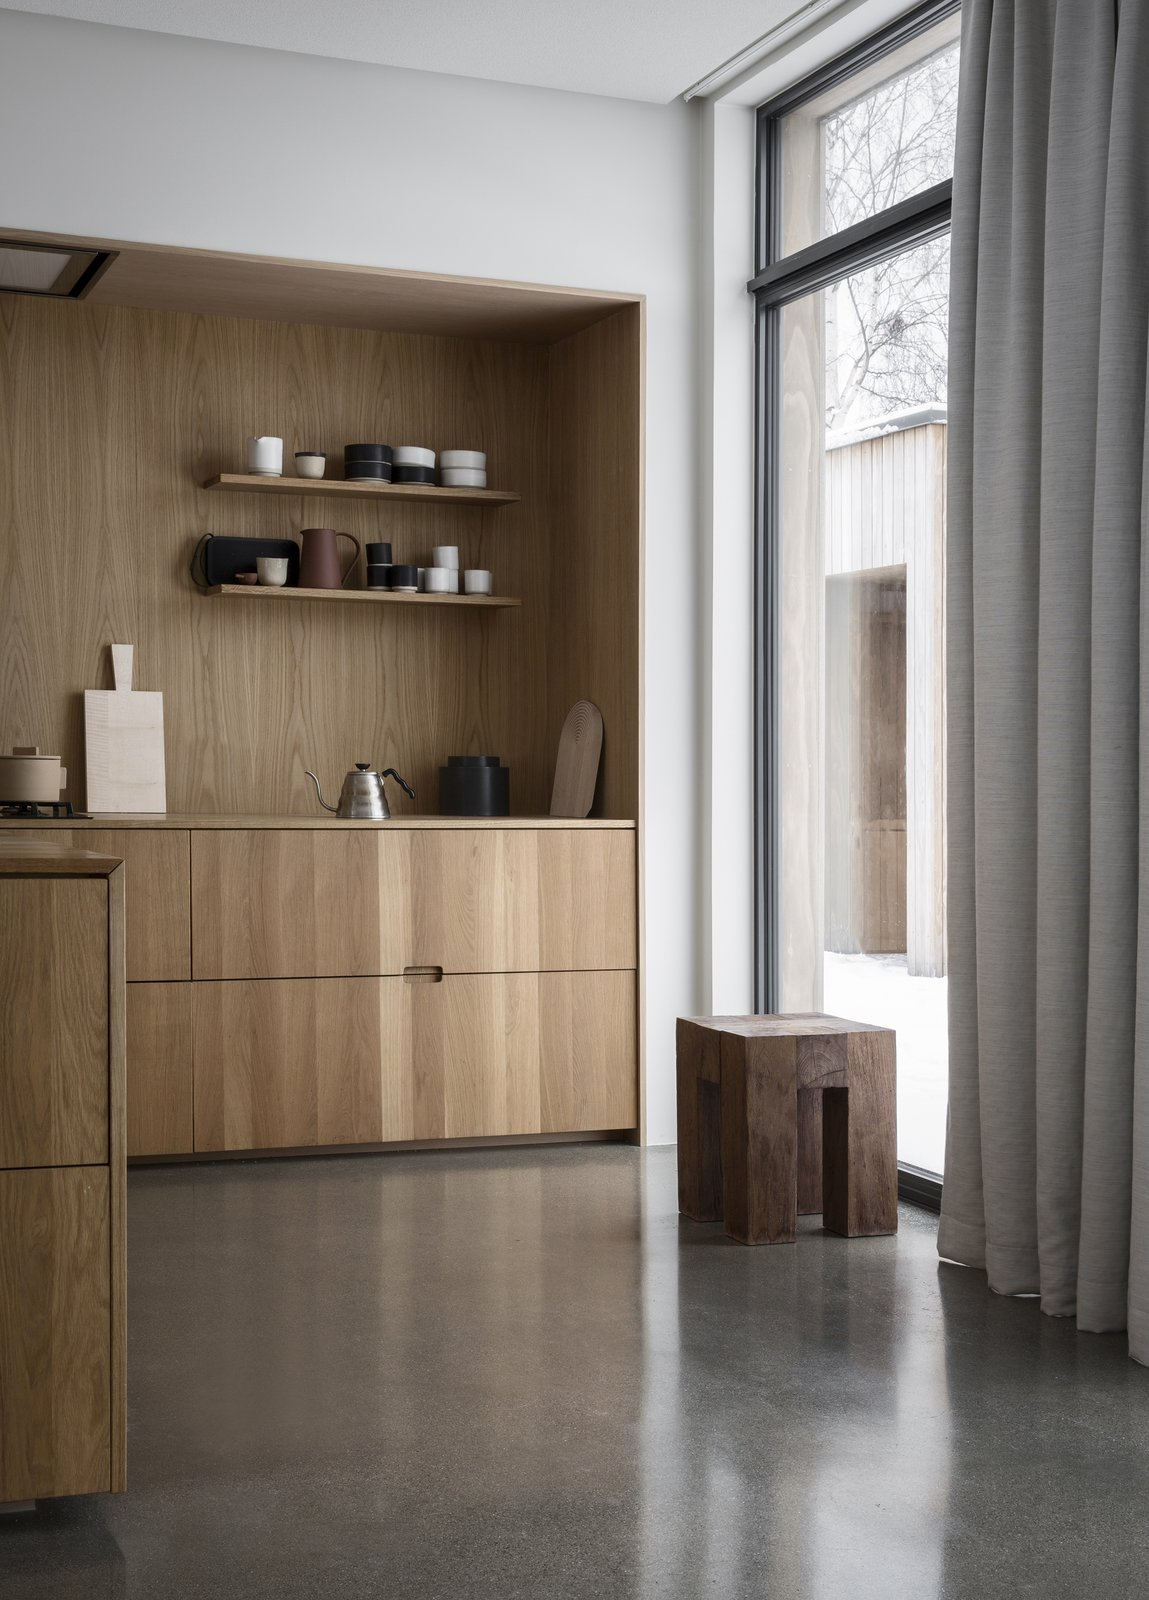 Kitchen, Concrete Floor, Wood Counter, Wood Cabinet, Range, Open Cabinet, and Wood Backsplashe  Photo 8 of 18 in A Cubic Dwelling in Norway Just Oozes Hygge